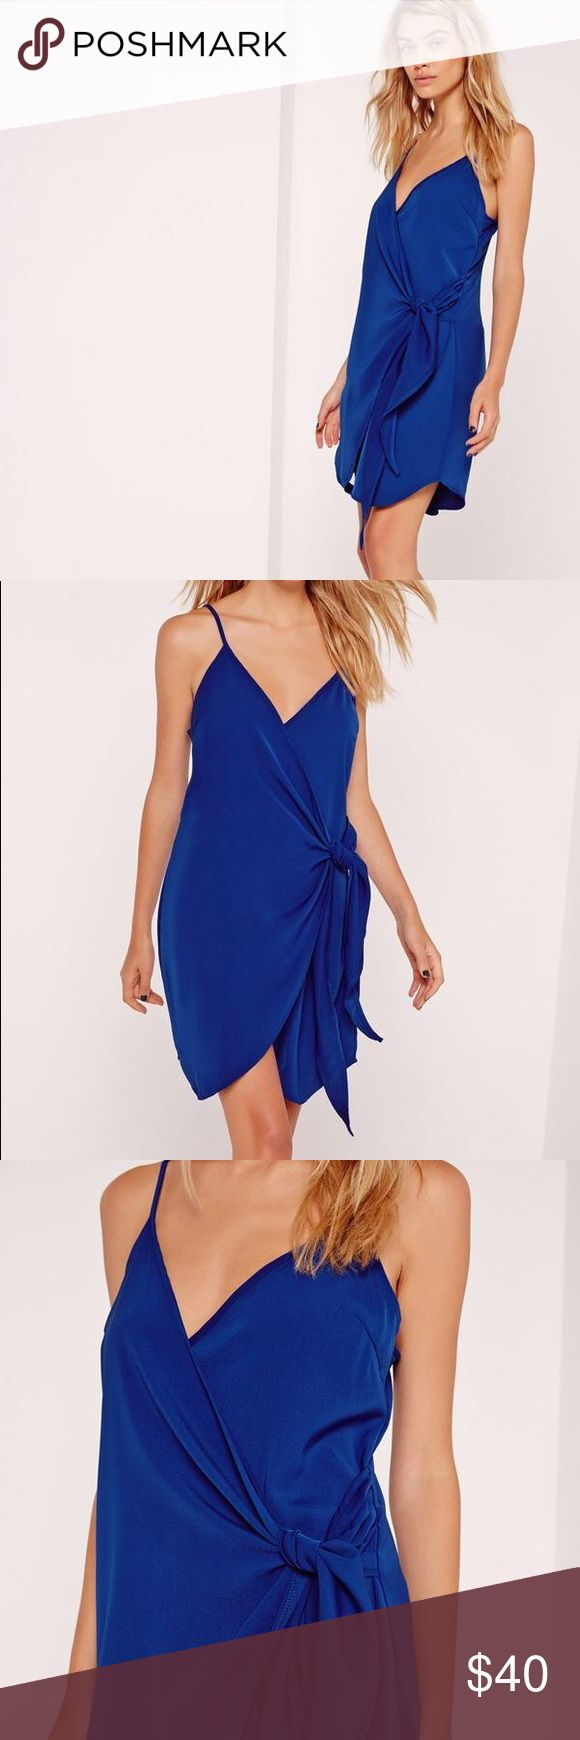 """Misguided Strappy Wrap Tie Waist Dress Cobalt Blue US SIZE 6 *BRAND NEW NEVER WORN WITH TAGS!!!*  This season has been awash with royal blue and this dress is one not to miss. Featuring a cobalt blue for an instant pop of colour, adjustable cami straps and a tie waist to pull in your curves. This shift dress can be dressed up or down. Team with black heeled boots and a jacket for a smart cas' look. Approx length 90cm/35"""" (based on a uk size 8 sample)   95% polyester 5% elastane  Model wears…"""